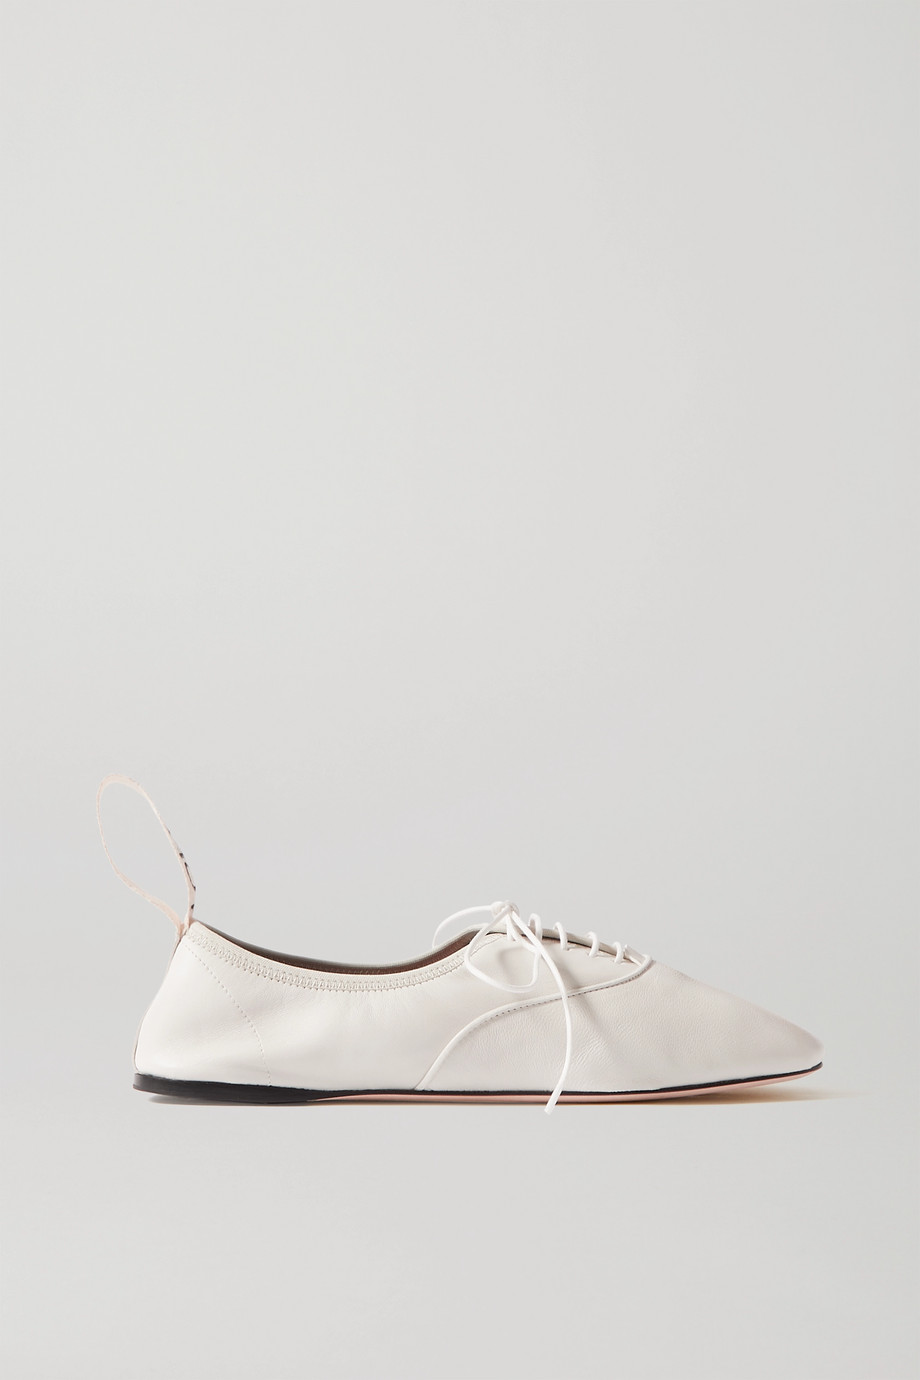 Loewe Logo-print lace-up leather ballet flats